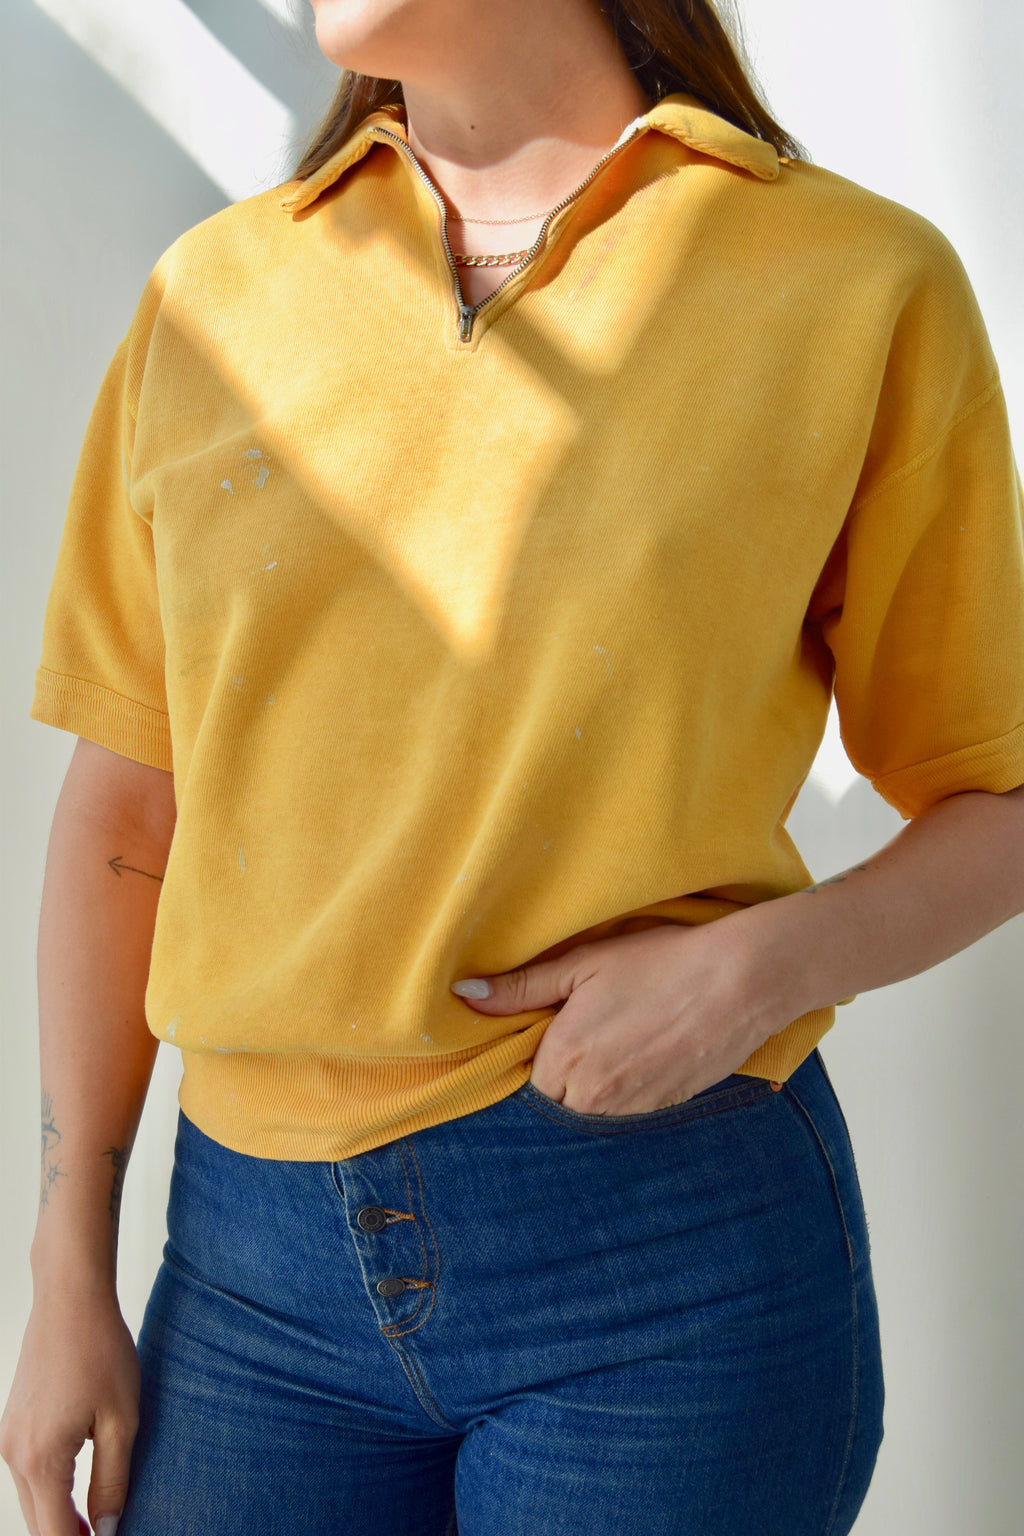 "Vintage ""Southern"" Sunny Yellow Short Sleeve Sweatshirt FREE SHIPPING TO THE U.S."